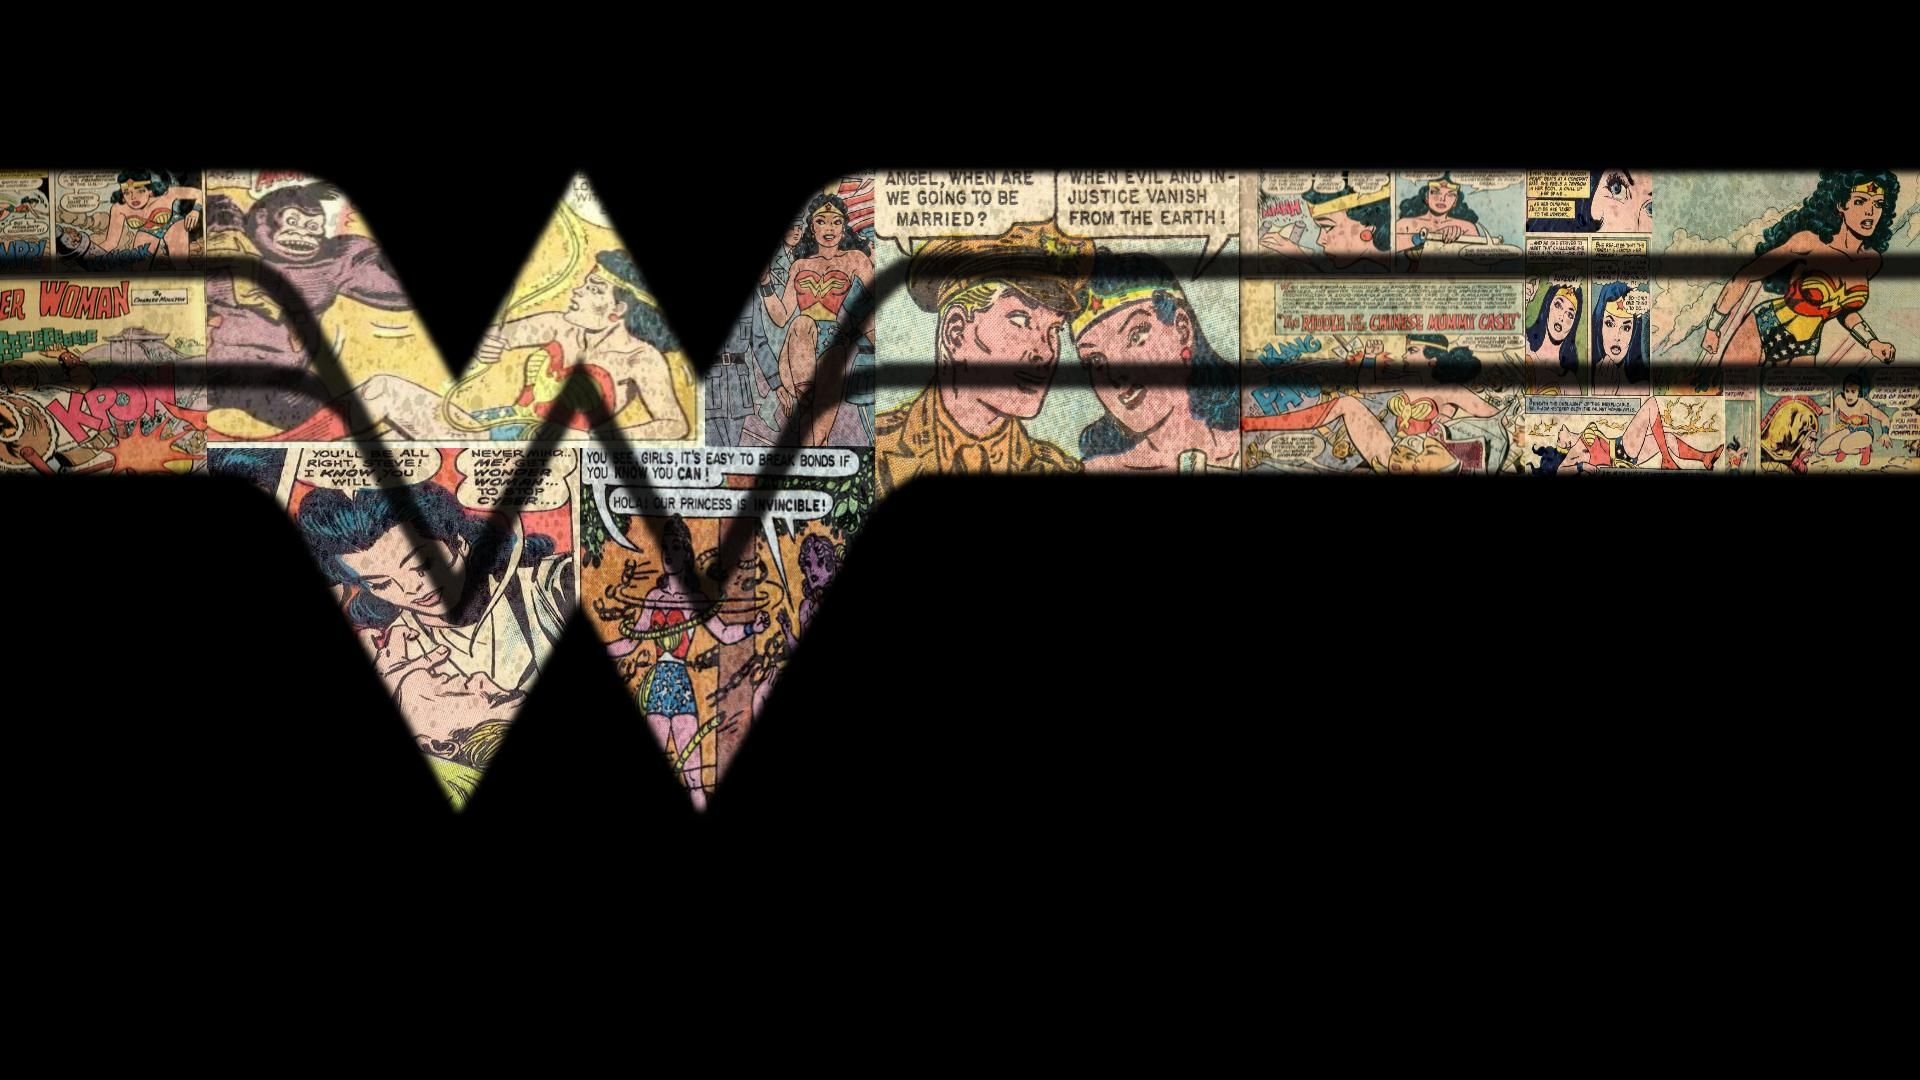 Wonder Woman Logo Wallpaper 61 Images: Imgur: The Most Awesome Images On The Internet